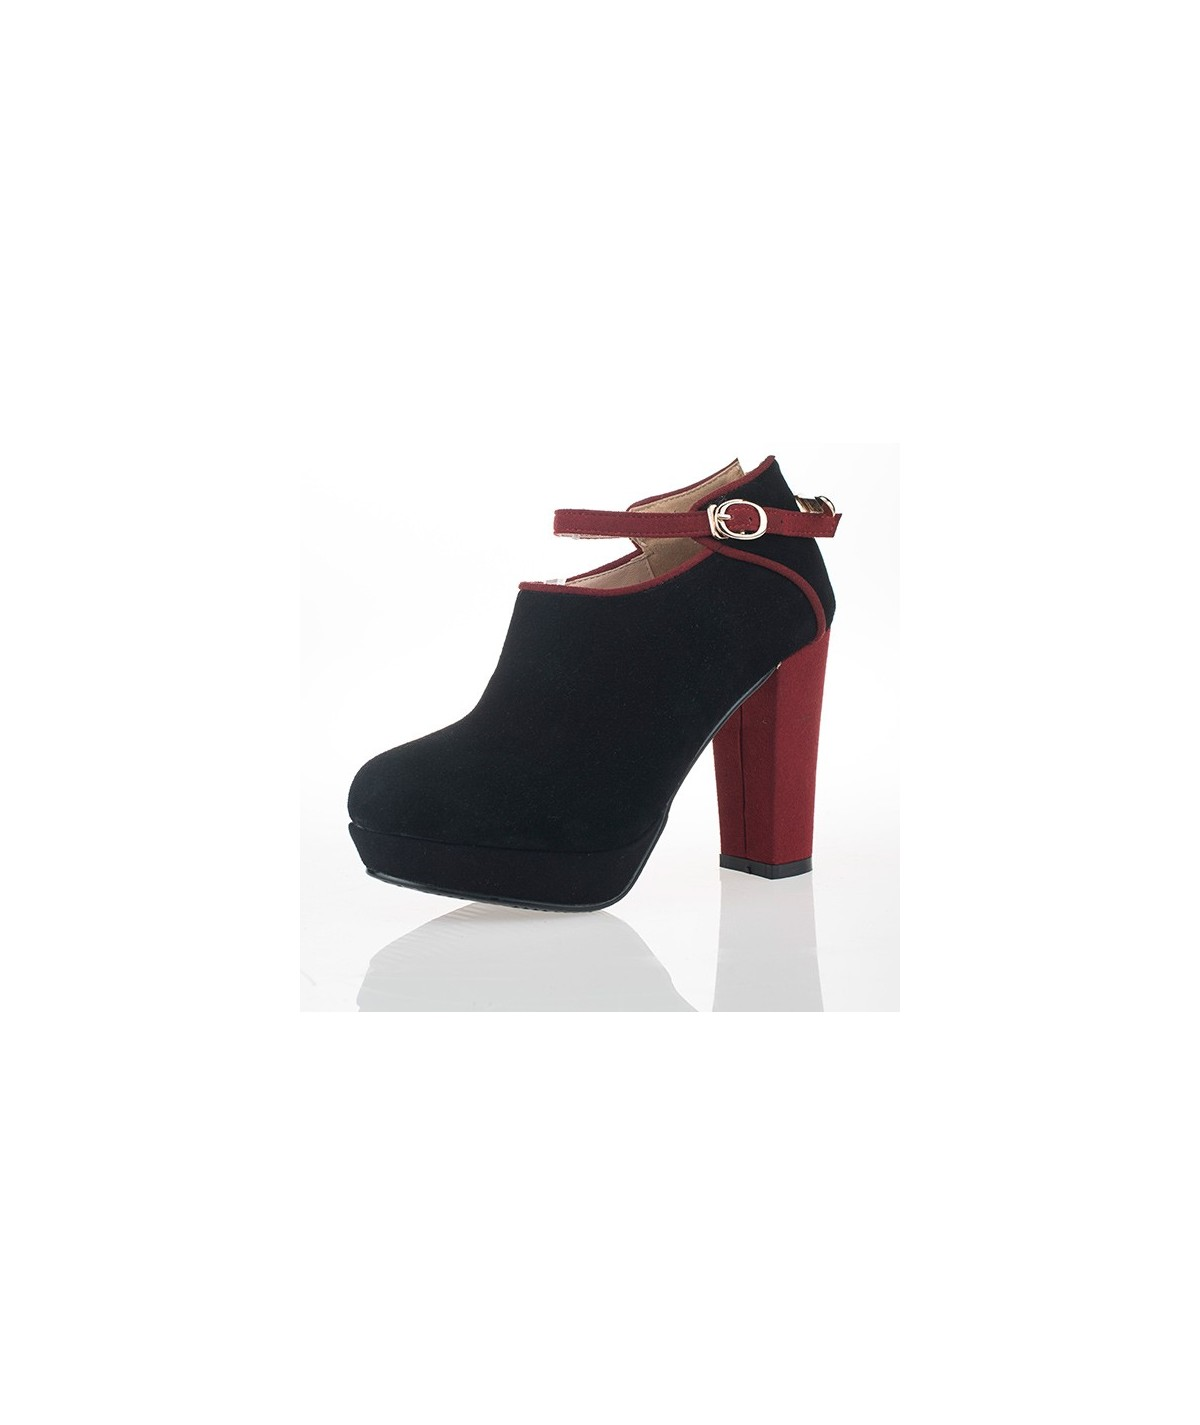 Block Heels for Petites, Small Size - Michela